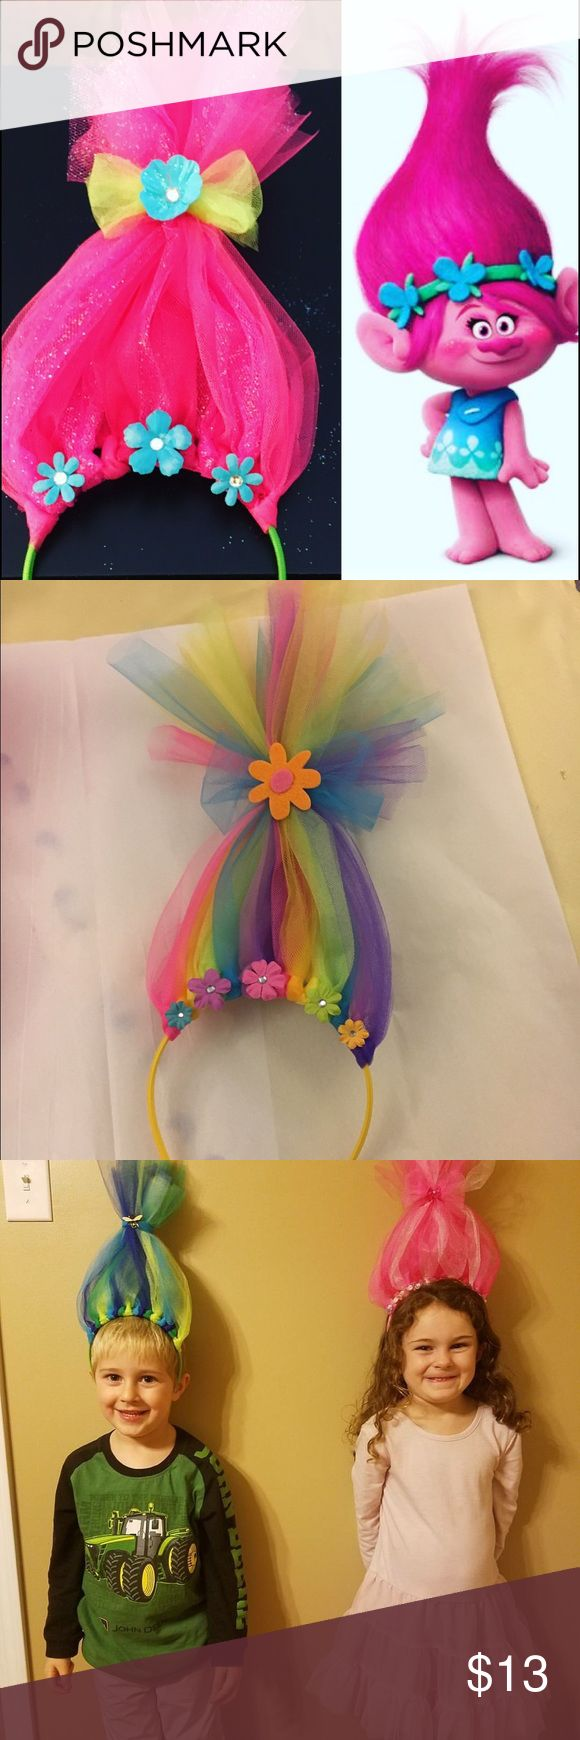 Troll Hair Headbands Custom and handcrafted troll headbands are a fun accessory and a great gift! Different colors and themes are available. These are made to order so message me for requests. 1 for $13 or 2 for $20 Accessories